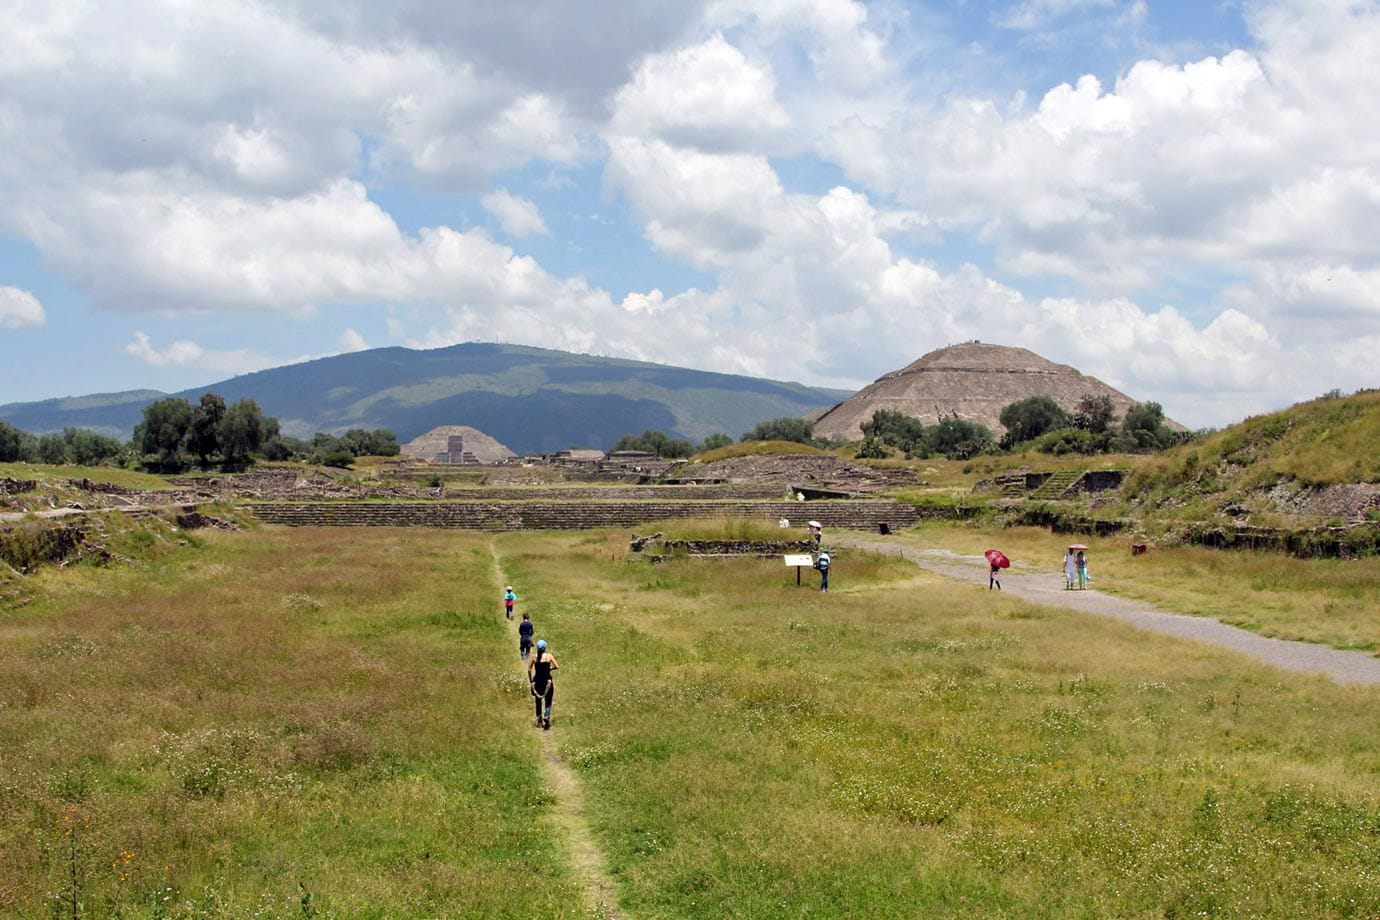 The Pyramids of Teotihuacan are the perfect place to spend a day away from Mexico City